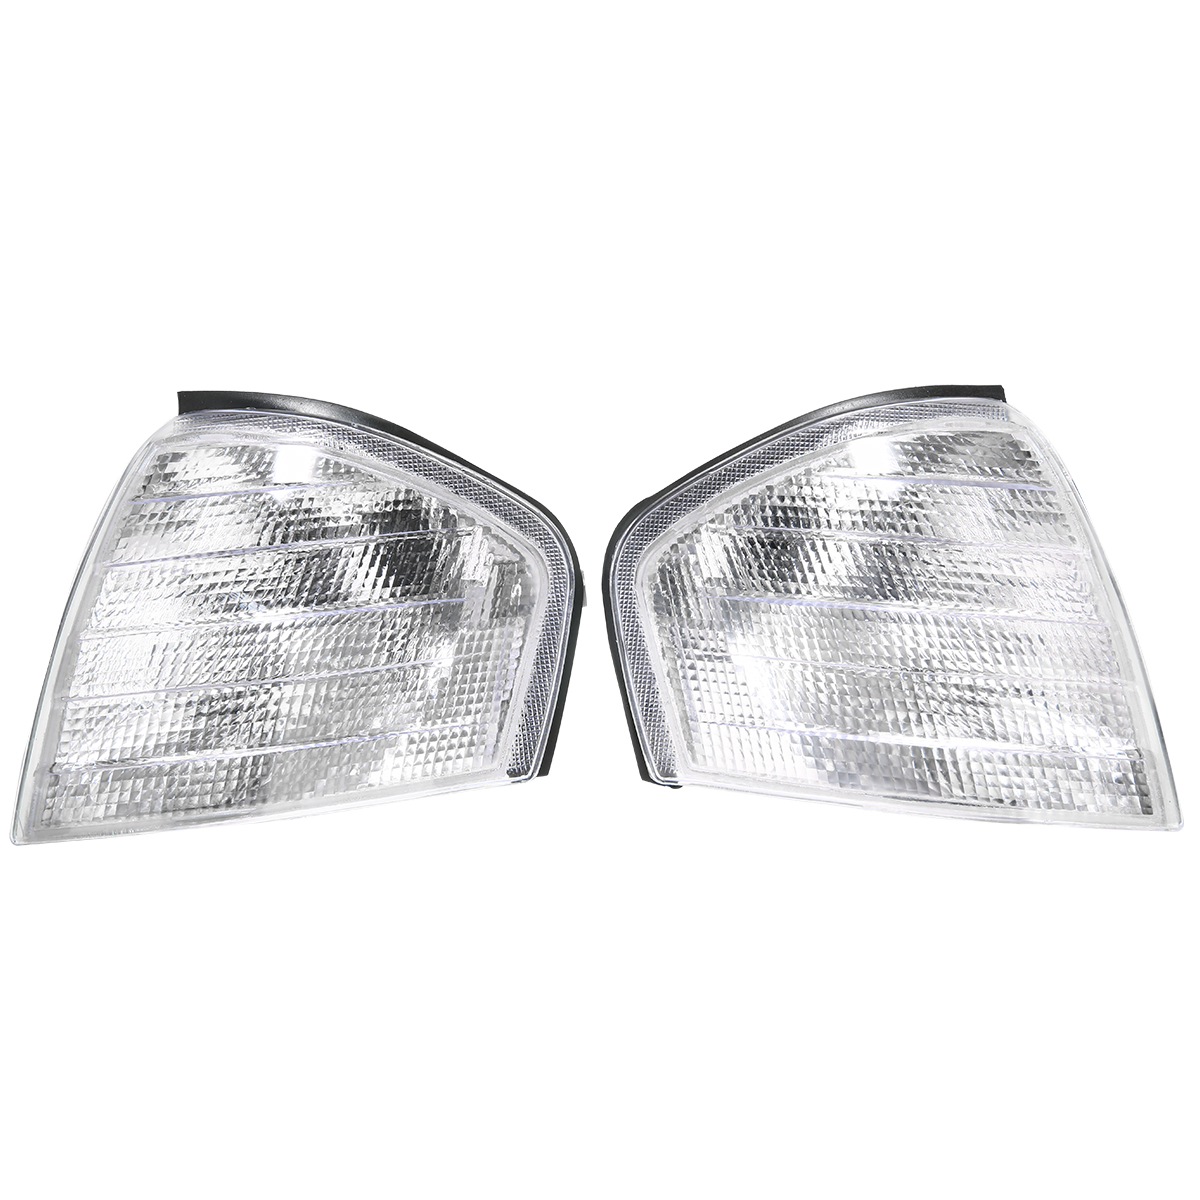 For Mercedes Benz C Class W202 1994 2000 1 Pair Clear Lens Turn Signal Corner Light Lamp Car Styling-in Signal Lamp from Automobiles & Motorcycles